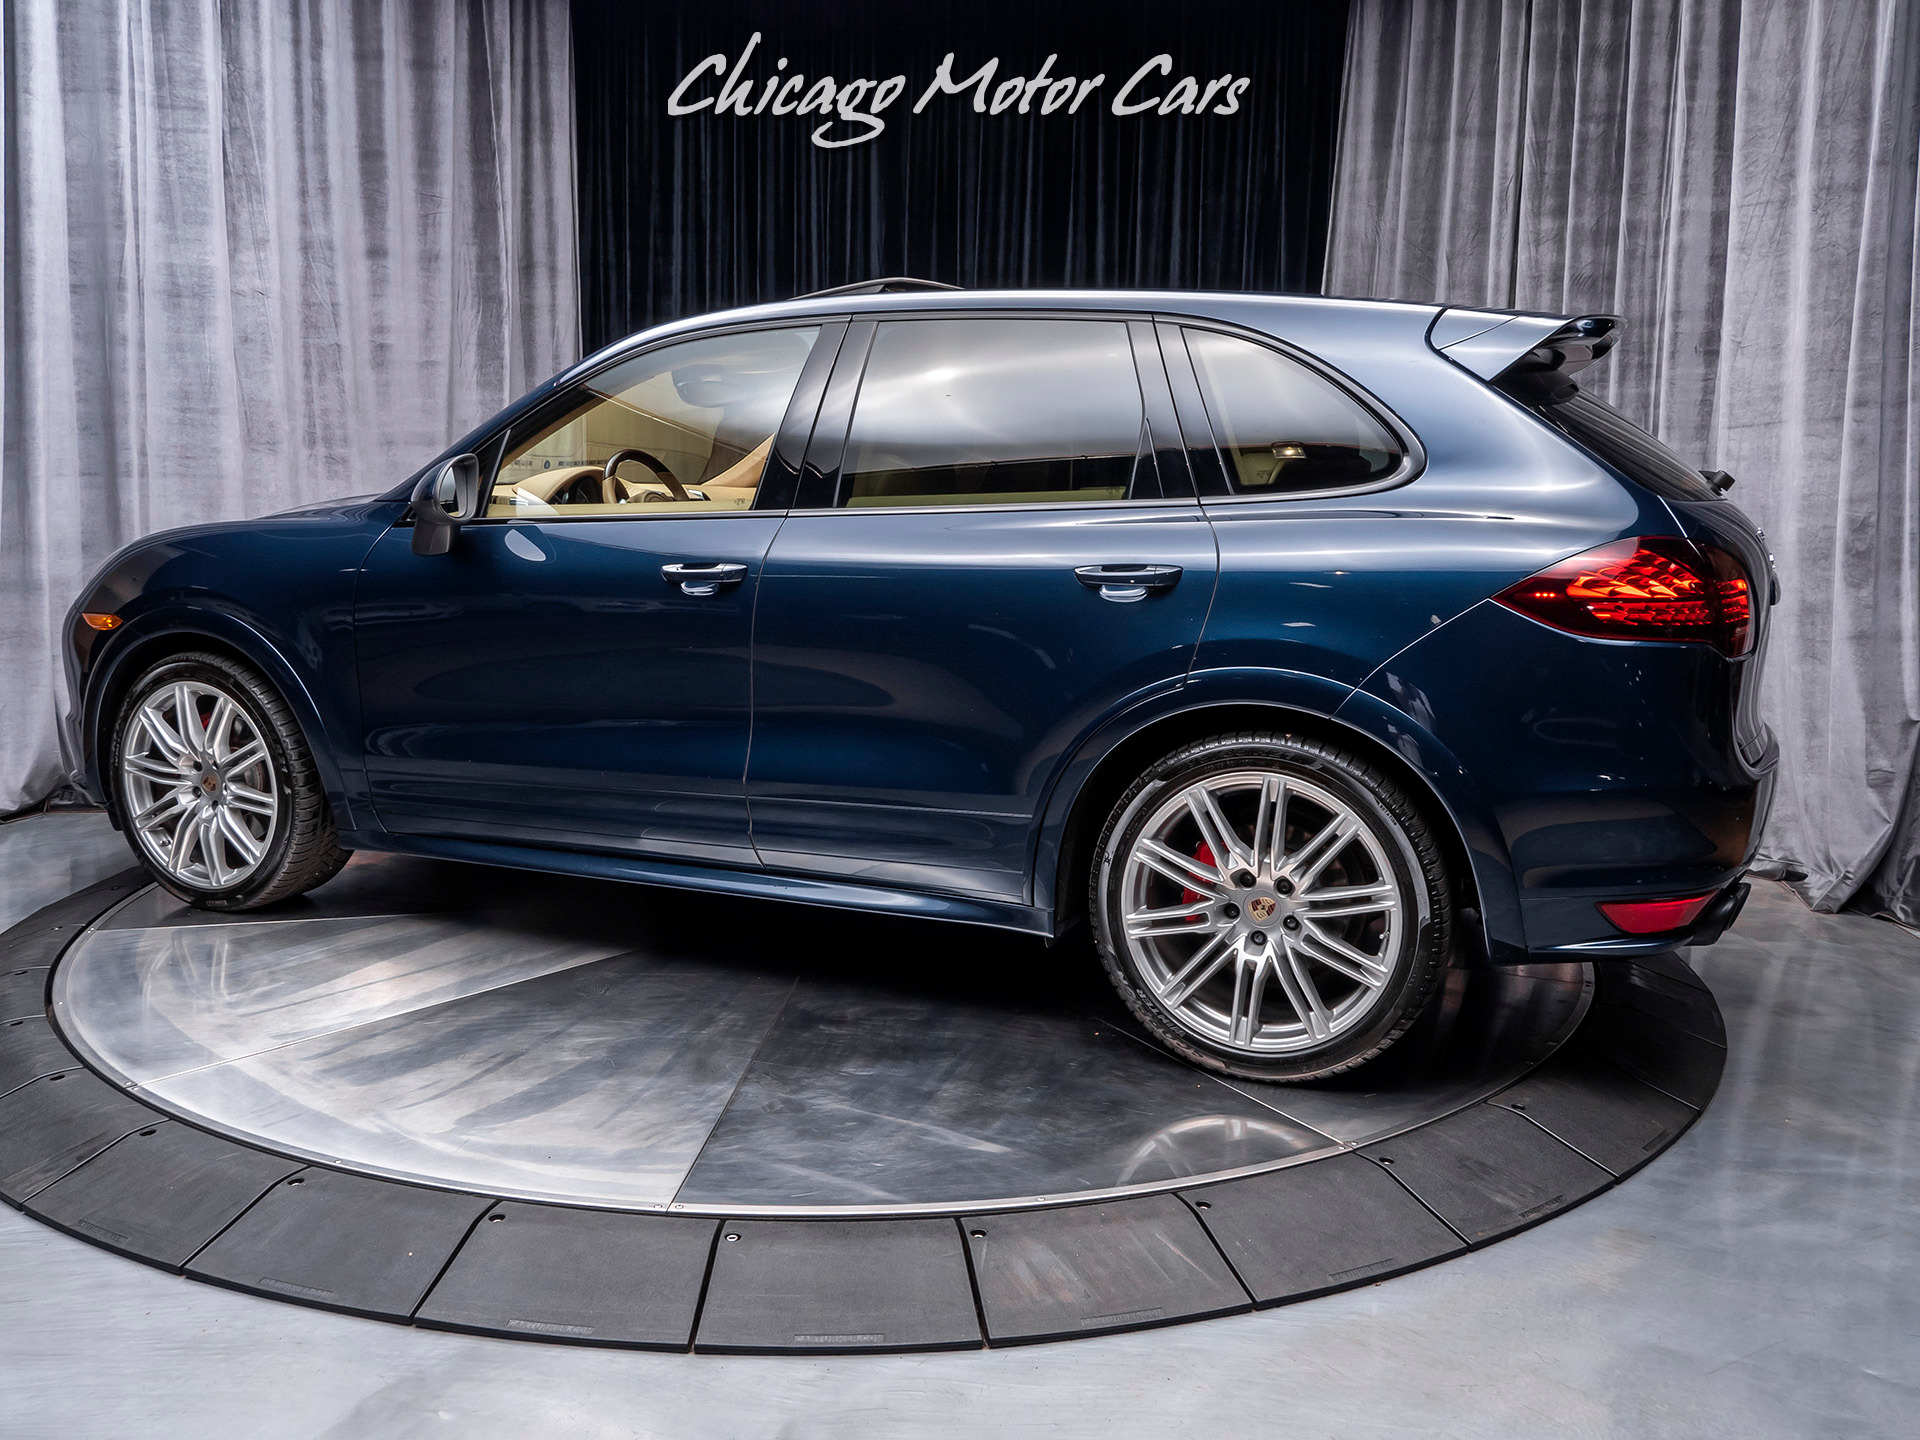 Used 2013 Porsche Cayenne Gts Suv Awd Msrp 99k For Sale